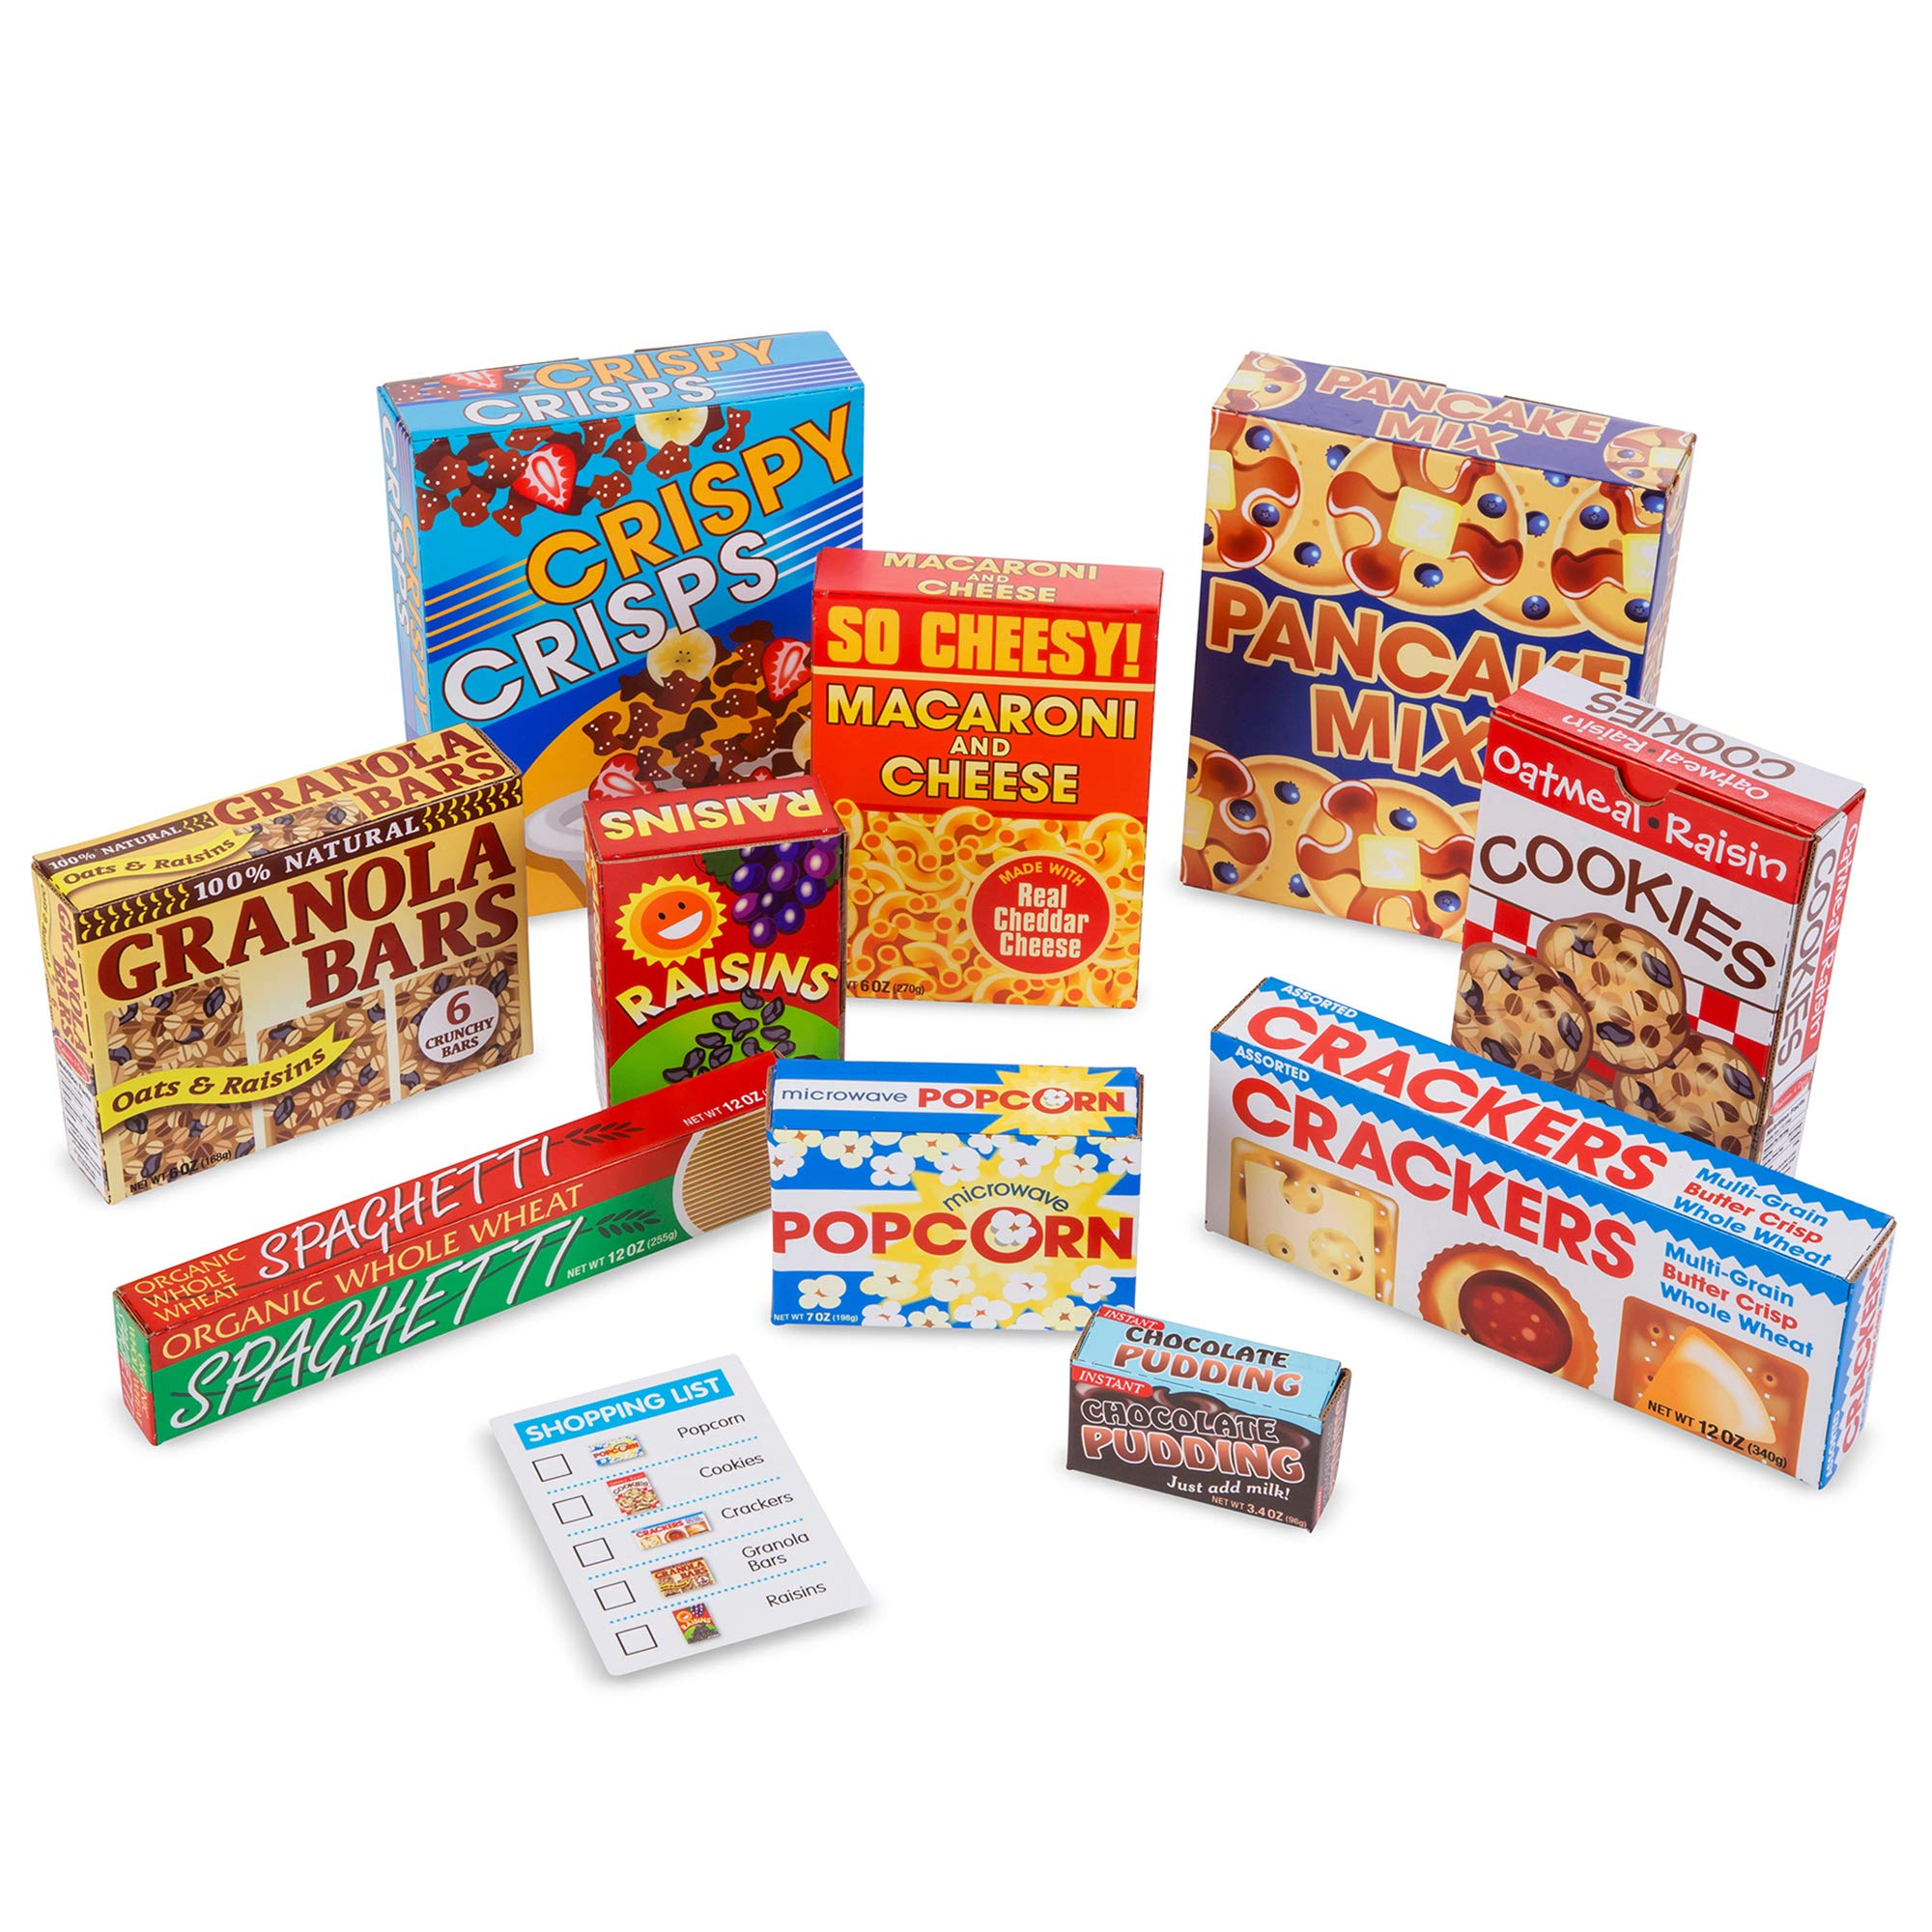 Melissa & Doug Let's Play House! Grocery Shelf Boxes (Pretend Play, Pre-Assembled, Sturdy Cardboard, 11 Pieces, Great Gift for Girls and Boys – Best for 3, 4, 5 Year Olds and Up)